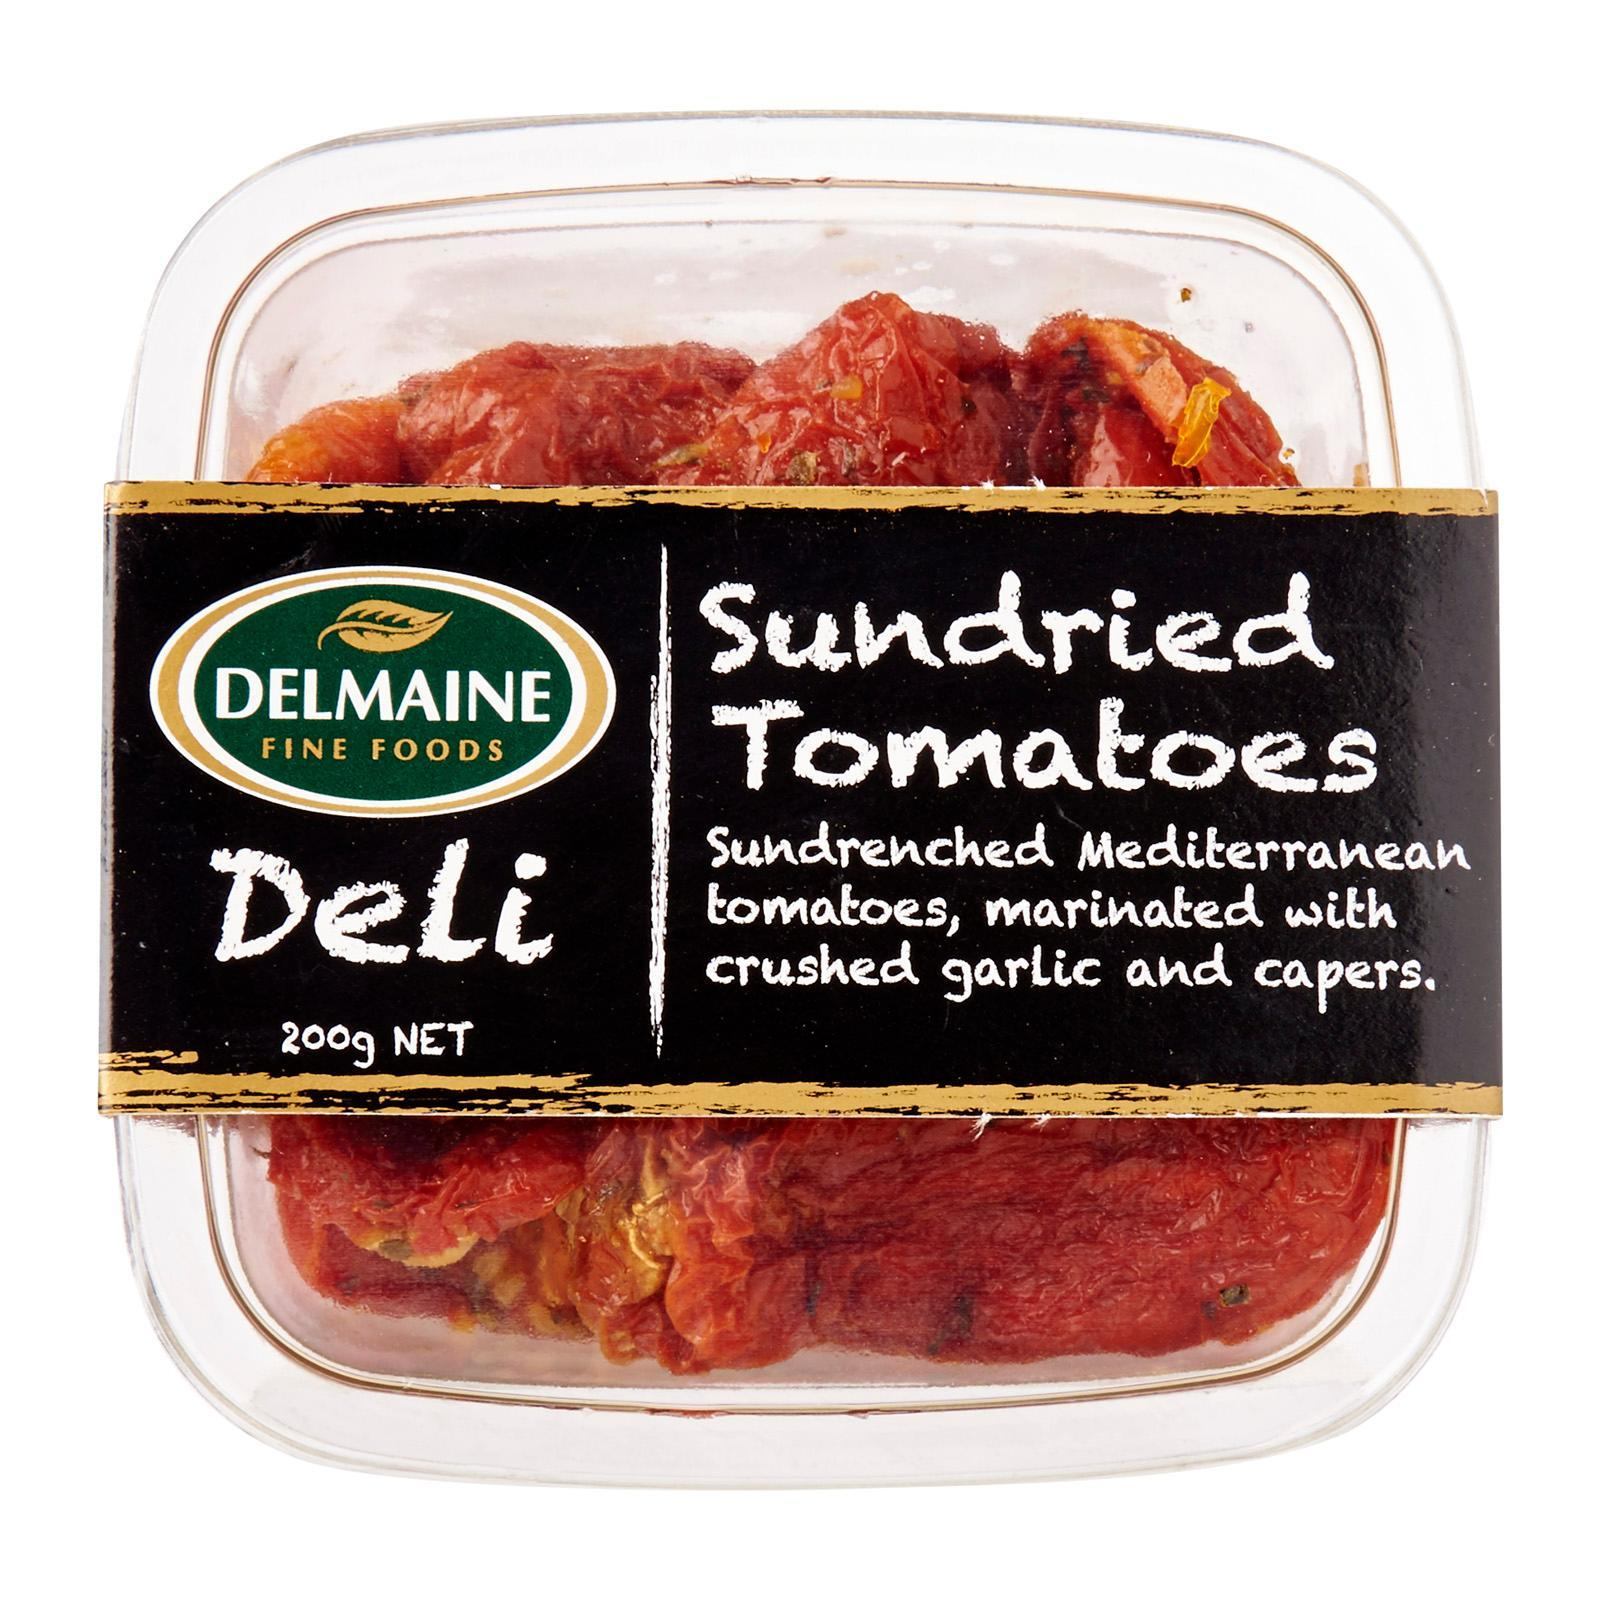 Delmaine Sundried Tomatoes Antipasto By Redmart.